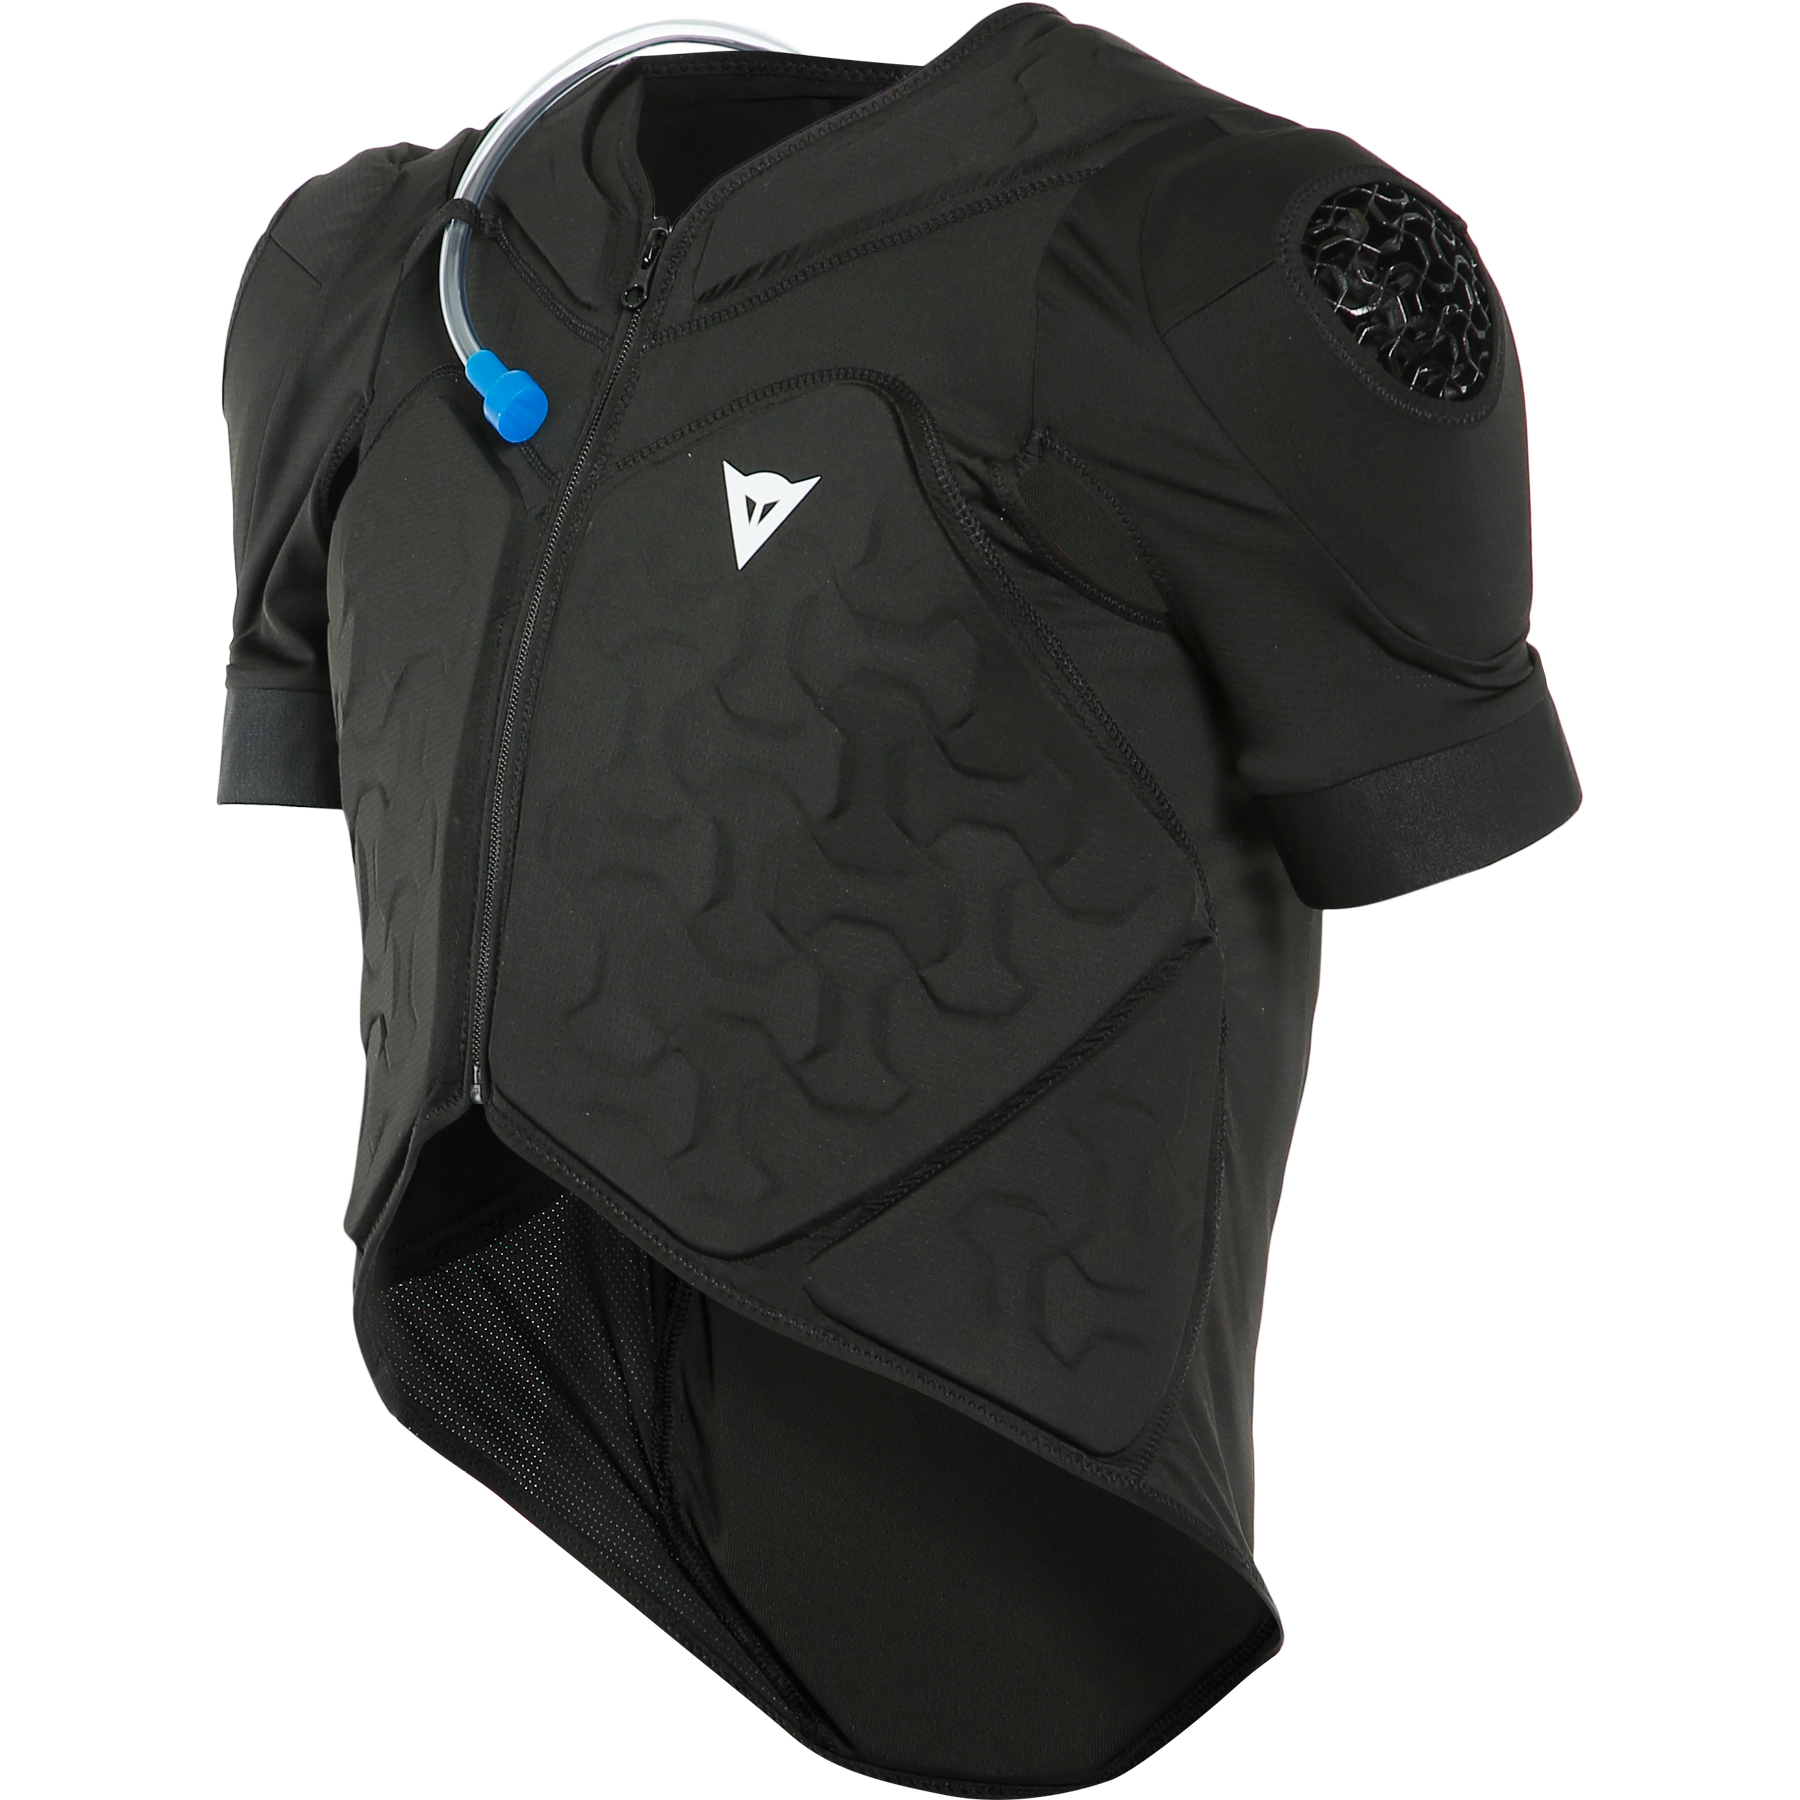 Dainese Rival Pro Protector Vest Jacket - black